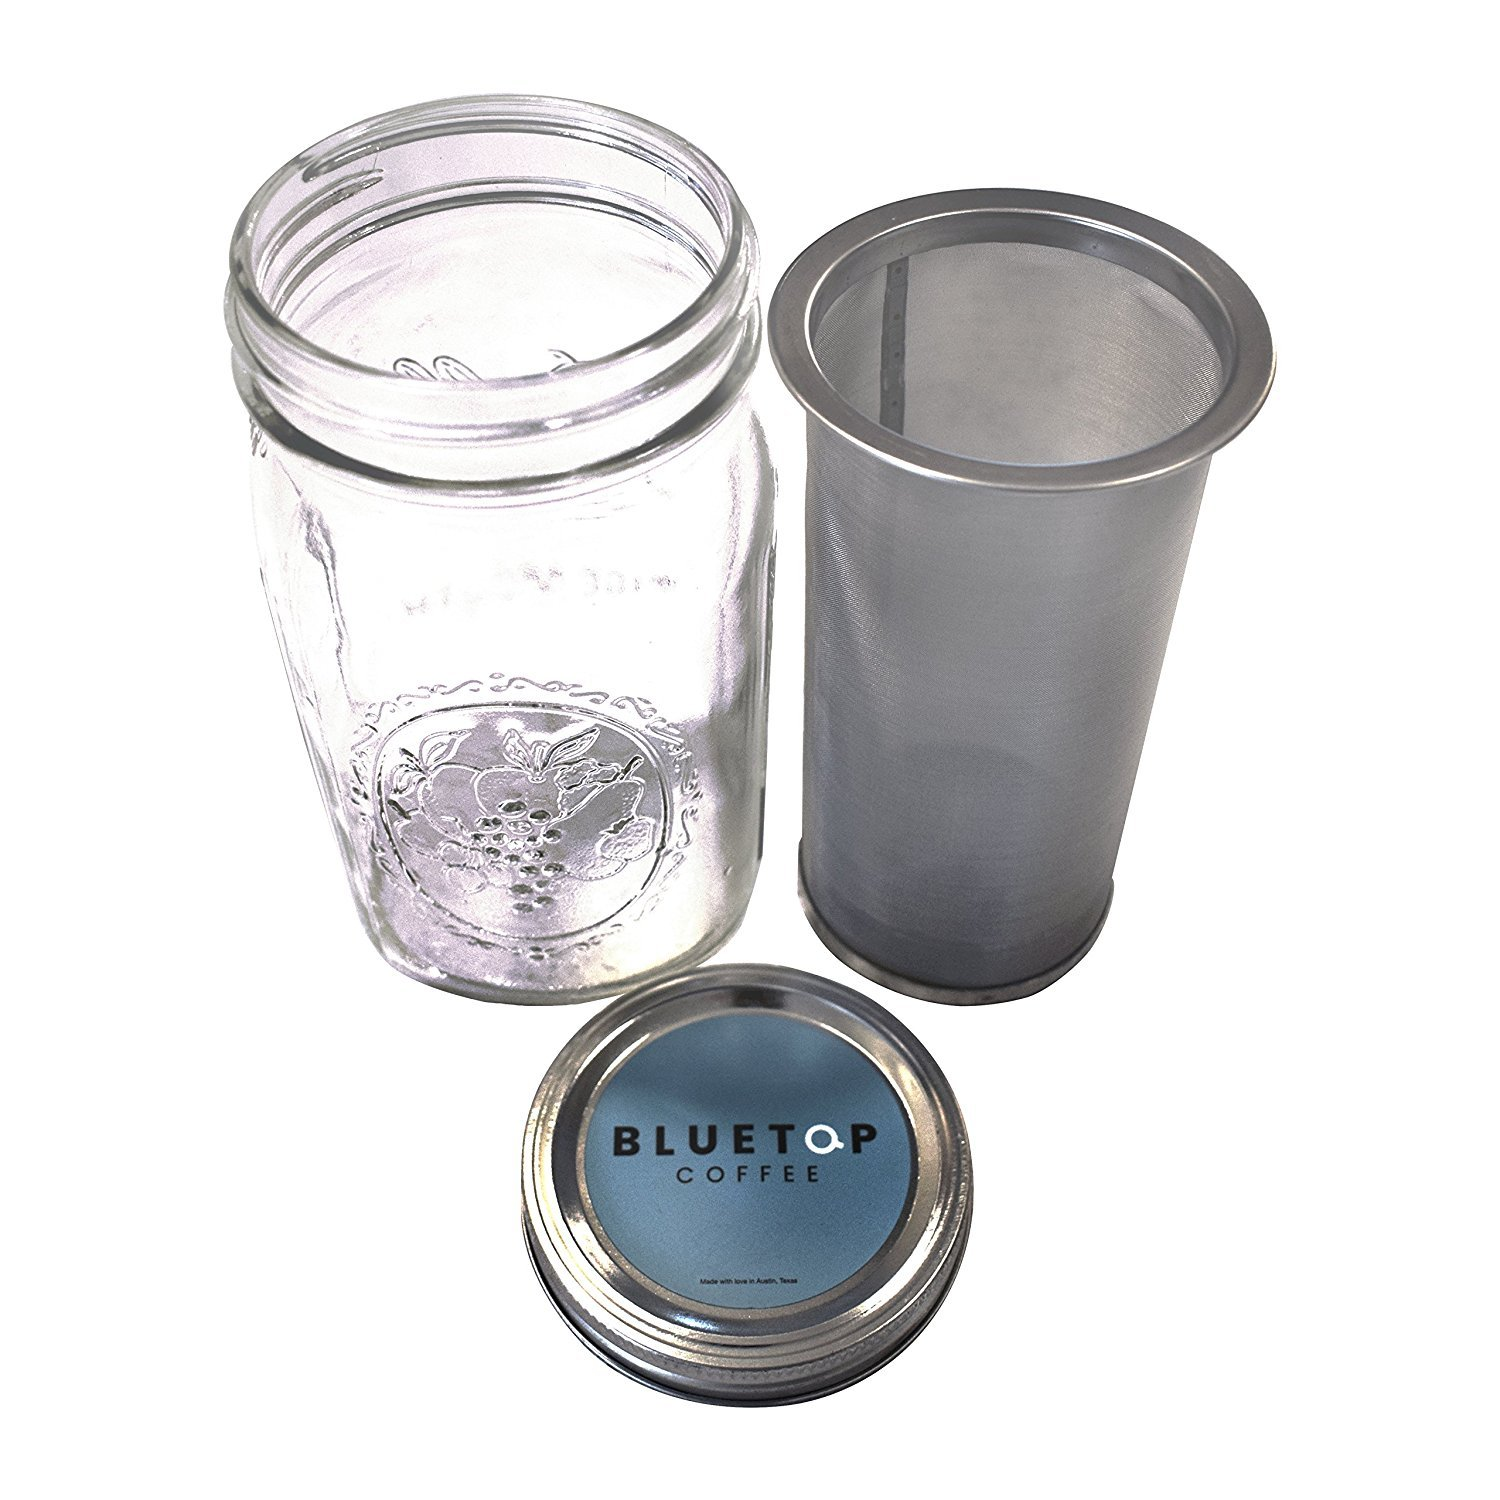 Mason Jar Cold Brew Coffee Maker | BlueTop Coffee | Iced Coffee and Iced Tea Brewer Infuser